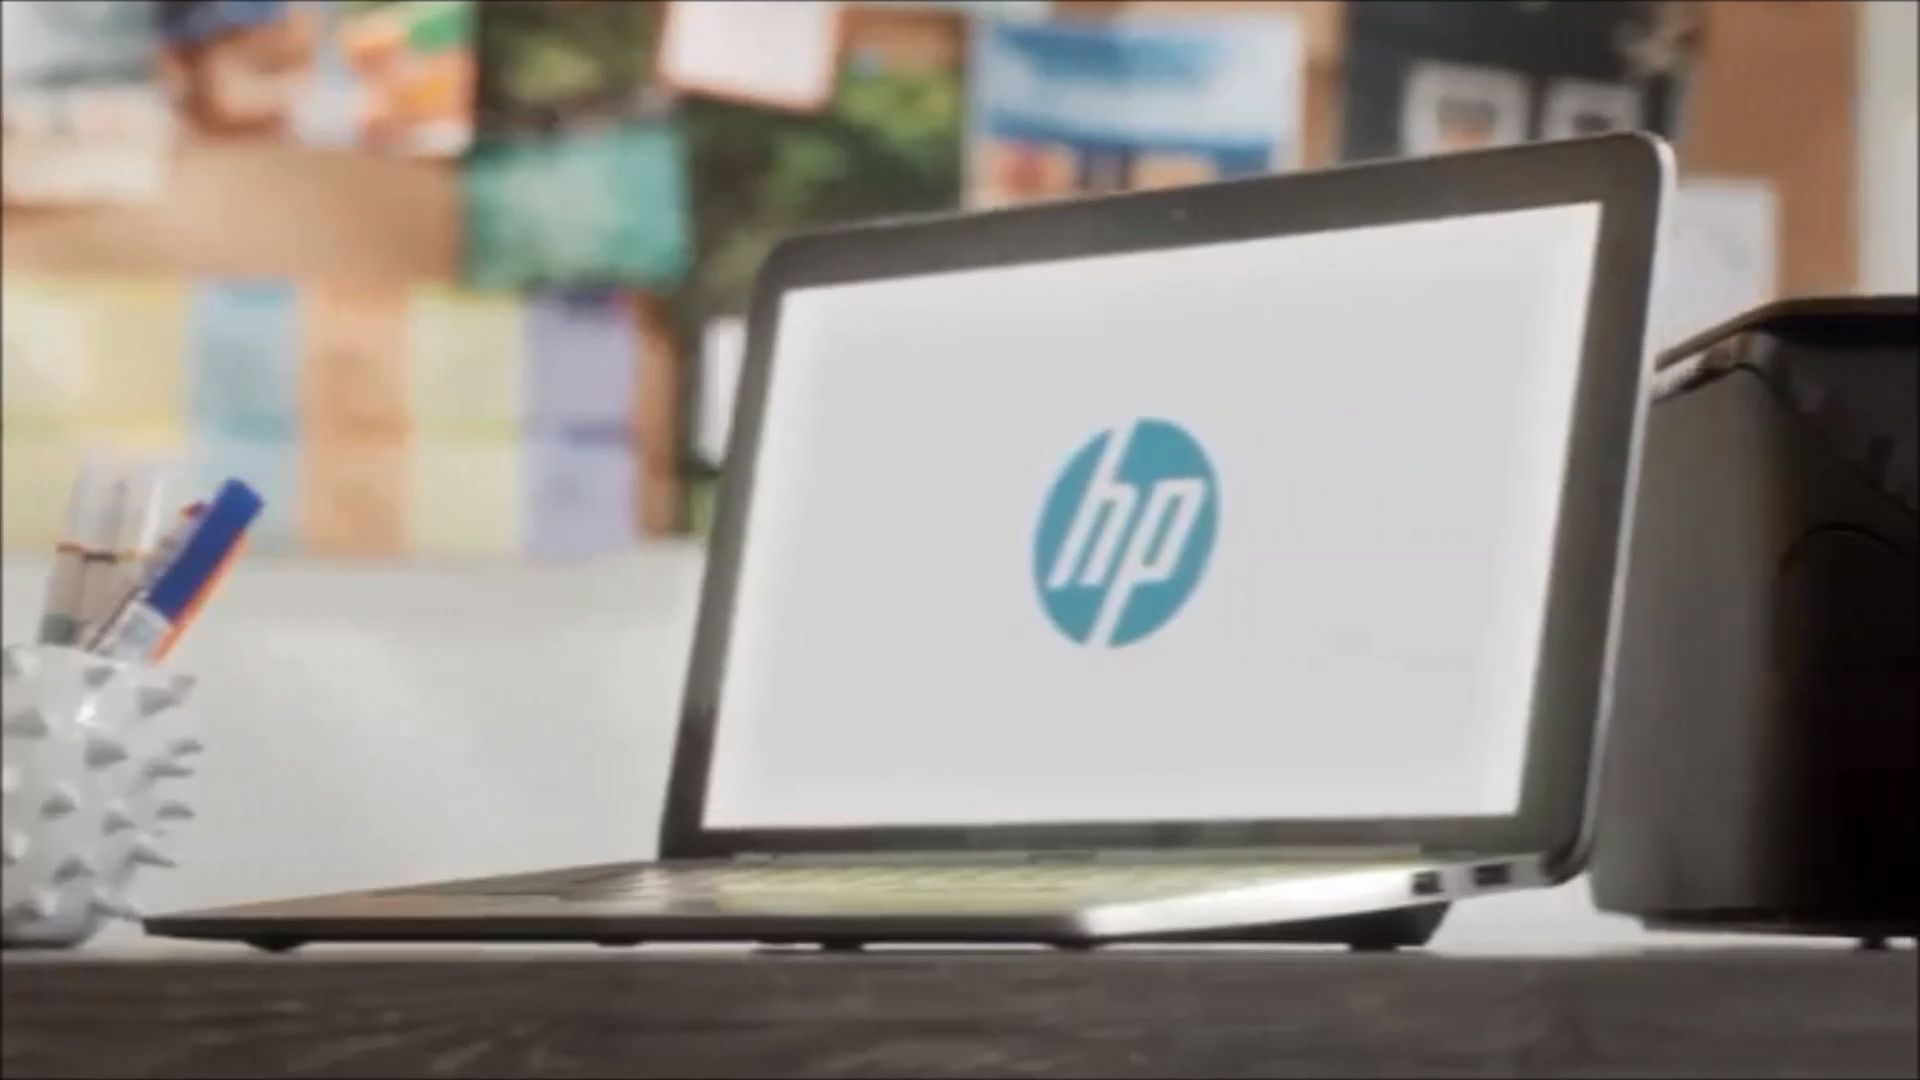 HP ENVY 4520 All-In-One Wireless Printer with Touch Screen